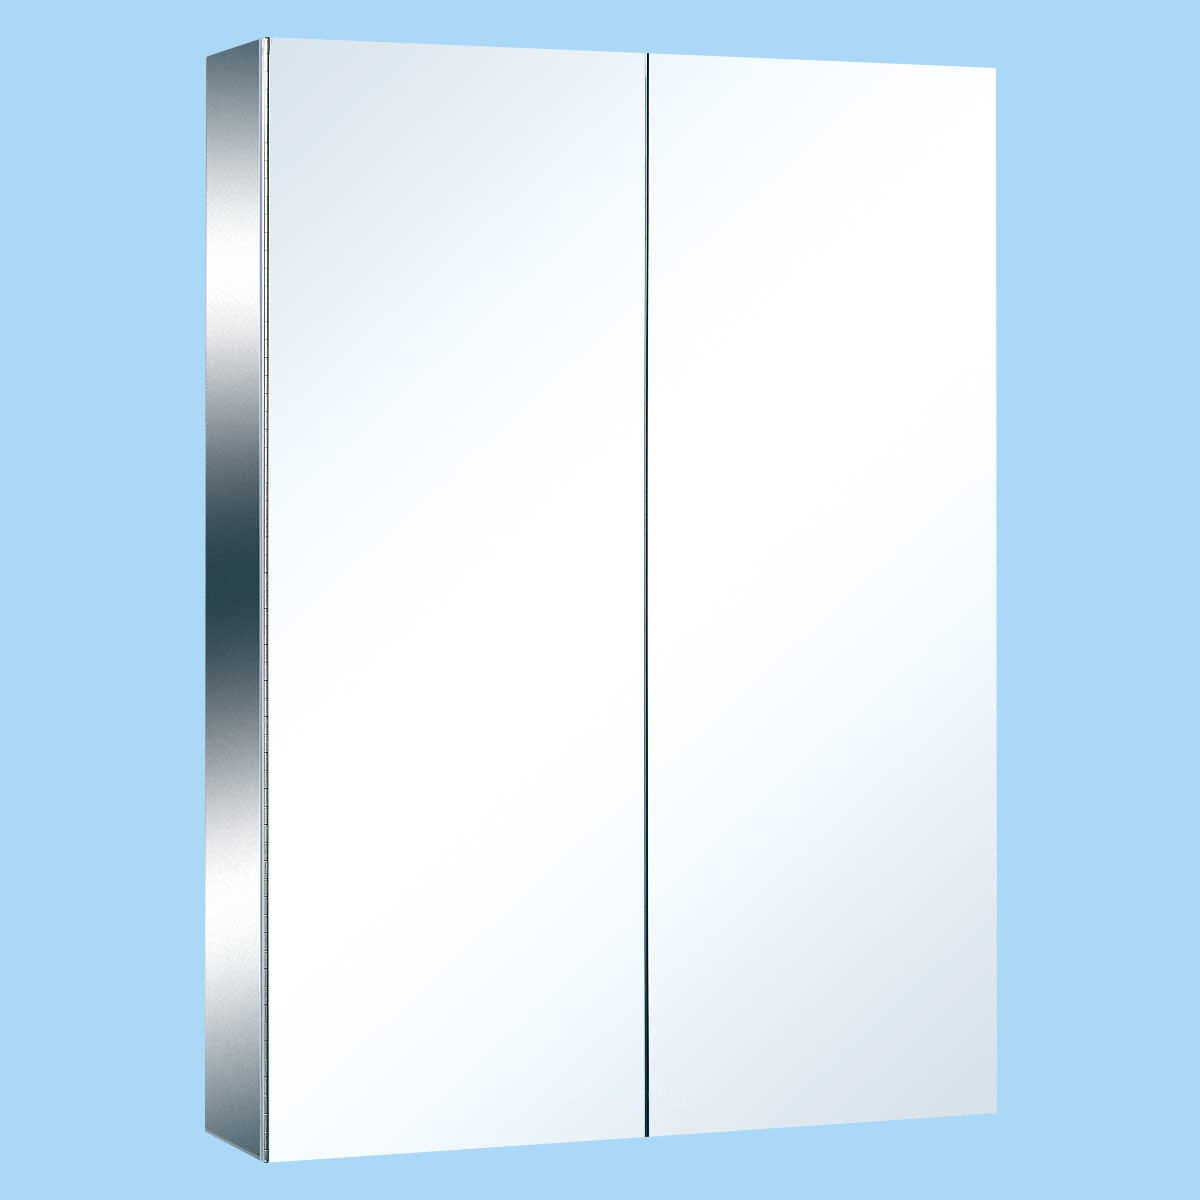 Stainless Steel Medicine Cabinet Double Mirror Door Large